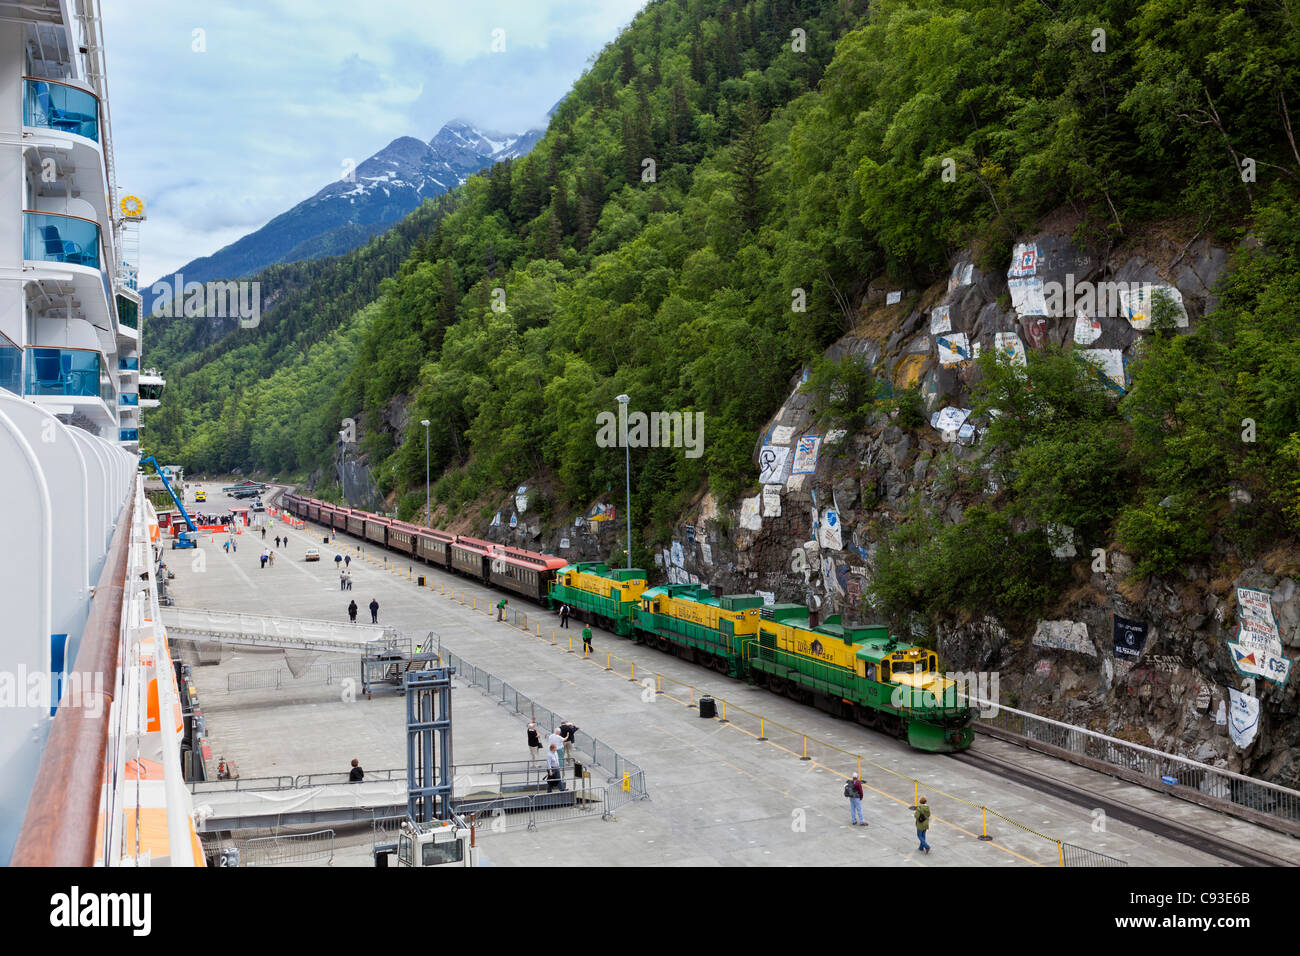 White Pass & Yukon RR meets cruise ship in Skagway, Alaska for tour to Canada. - Stock Image